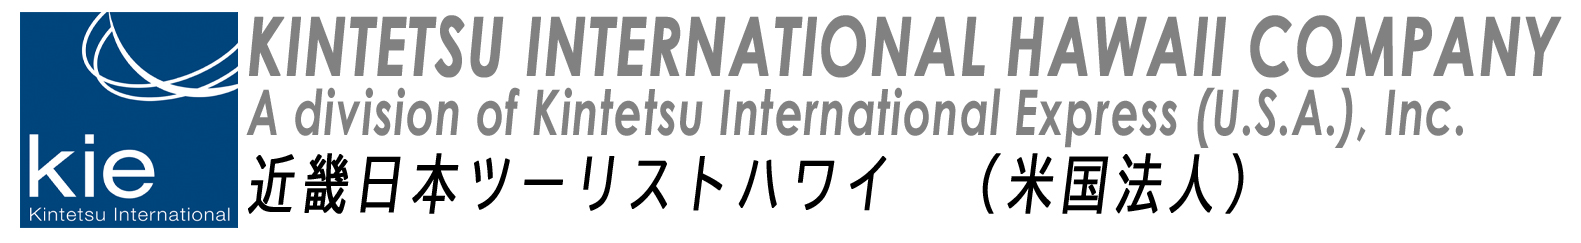 Kintetsu International Hawaii Company